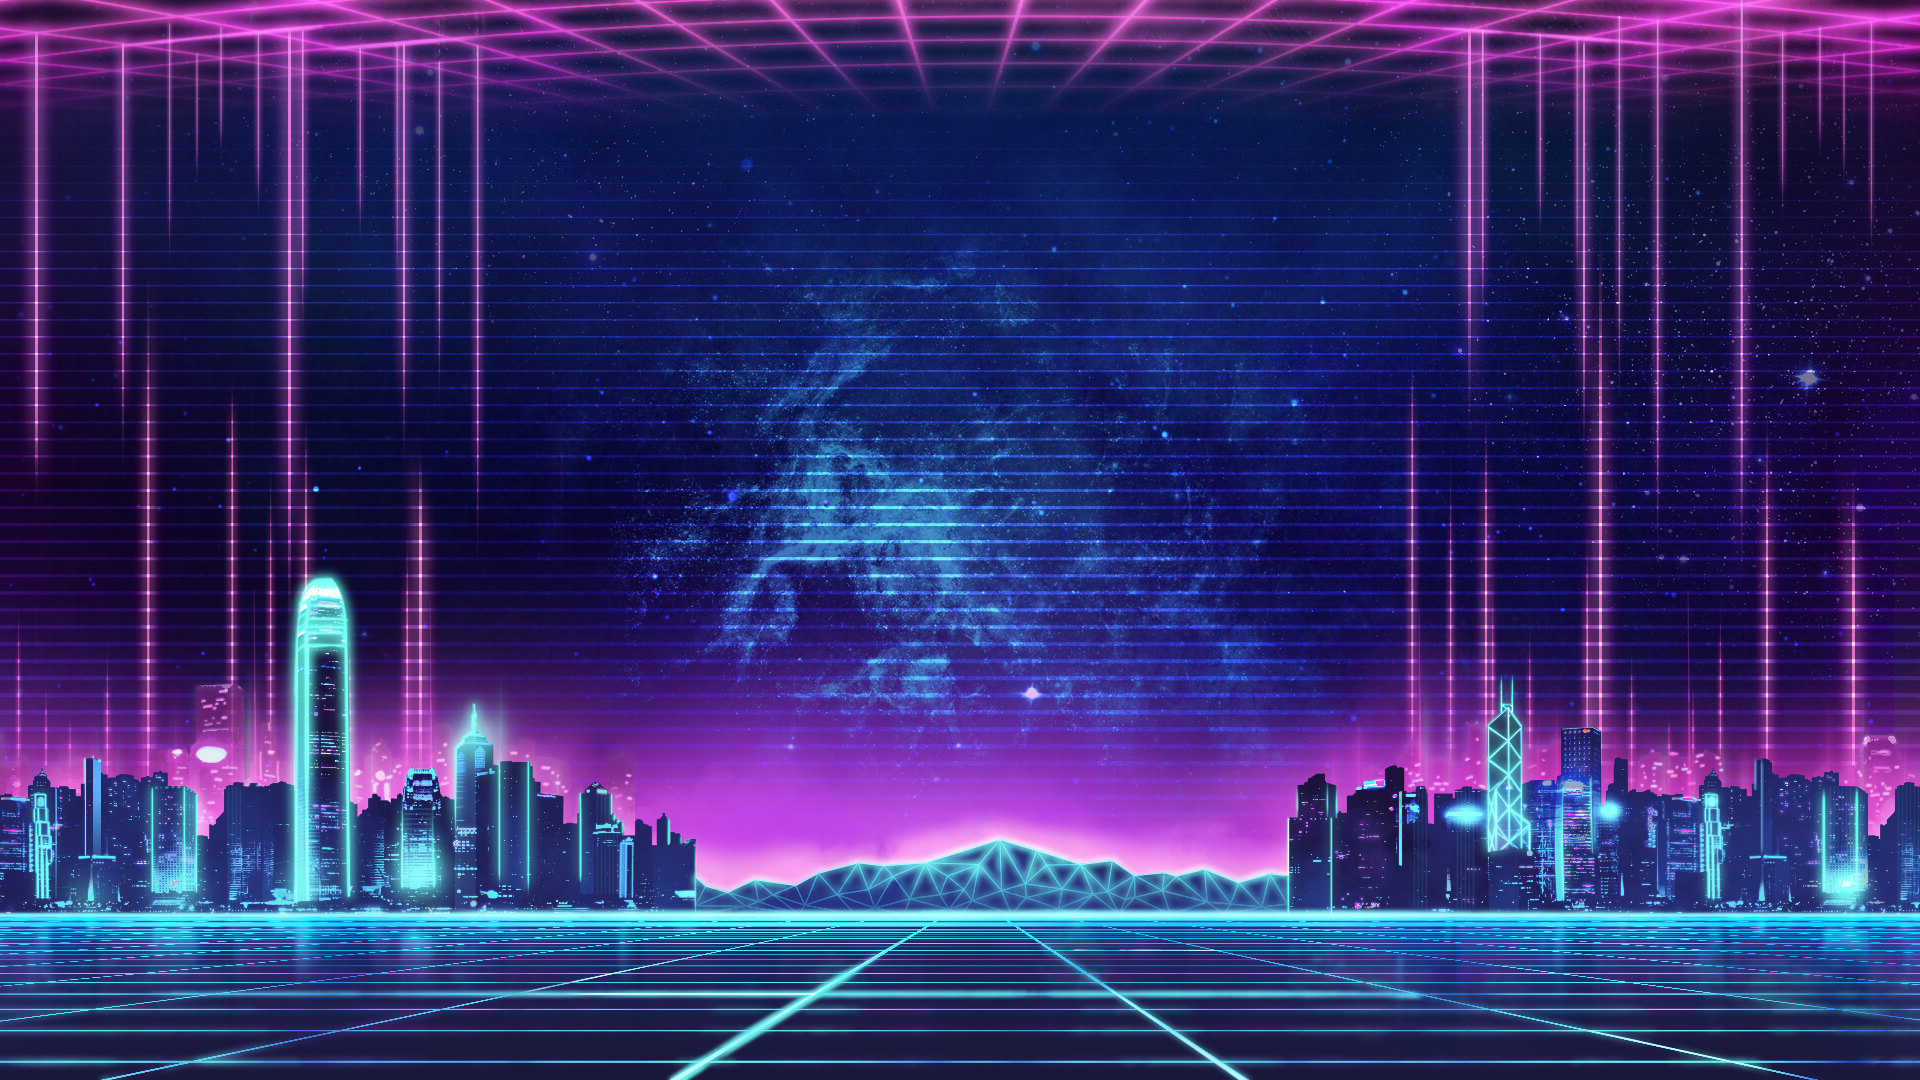 Synthwave Music Retro Neon City Neon Wallpaper Retro Waves Synthwave